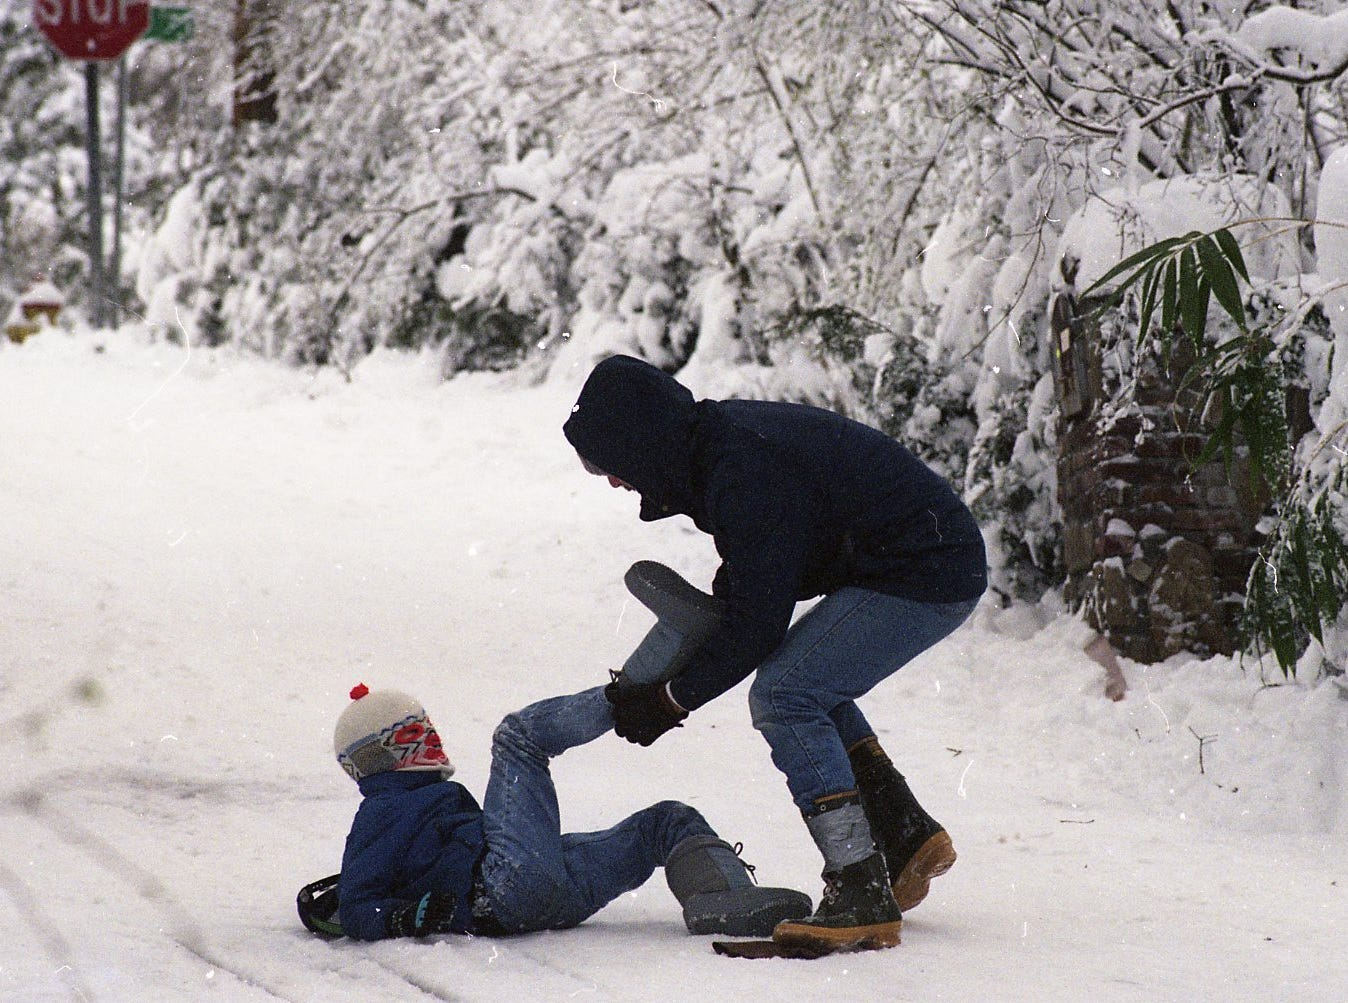 Bruce Anderson helps his 7-year-old son James get his boot back on in March 1993. James' boot filled with snow while he was sledding with his father and neighbors in the Sequoyah Hills area of Knoxville.